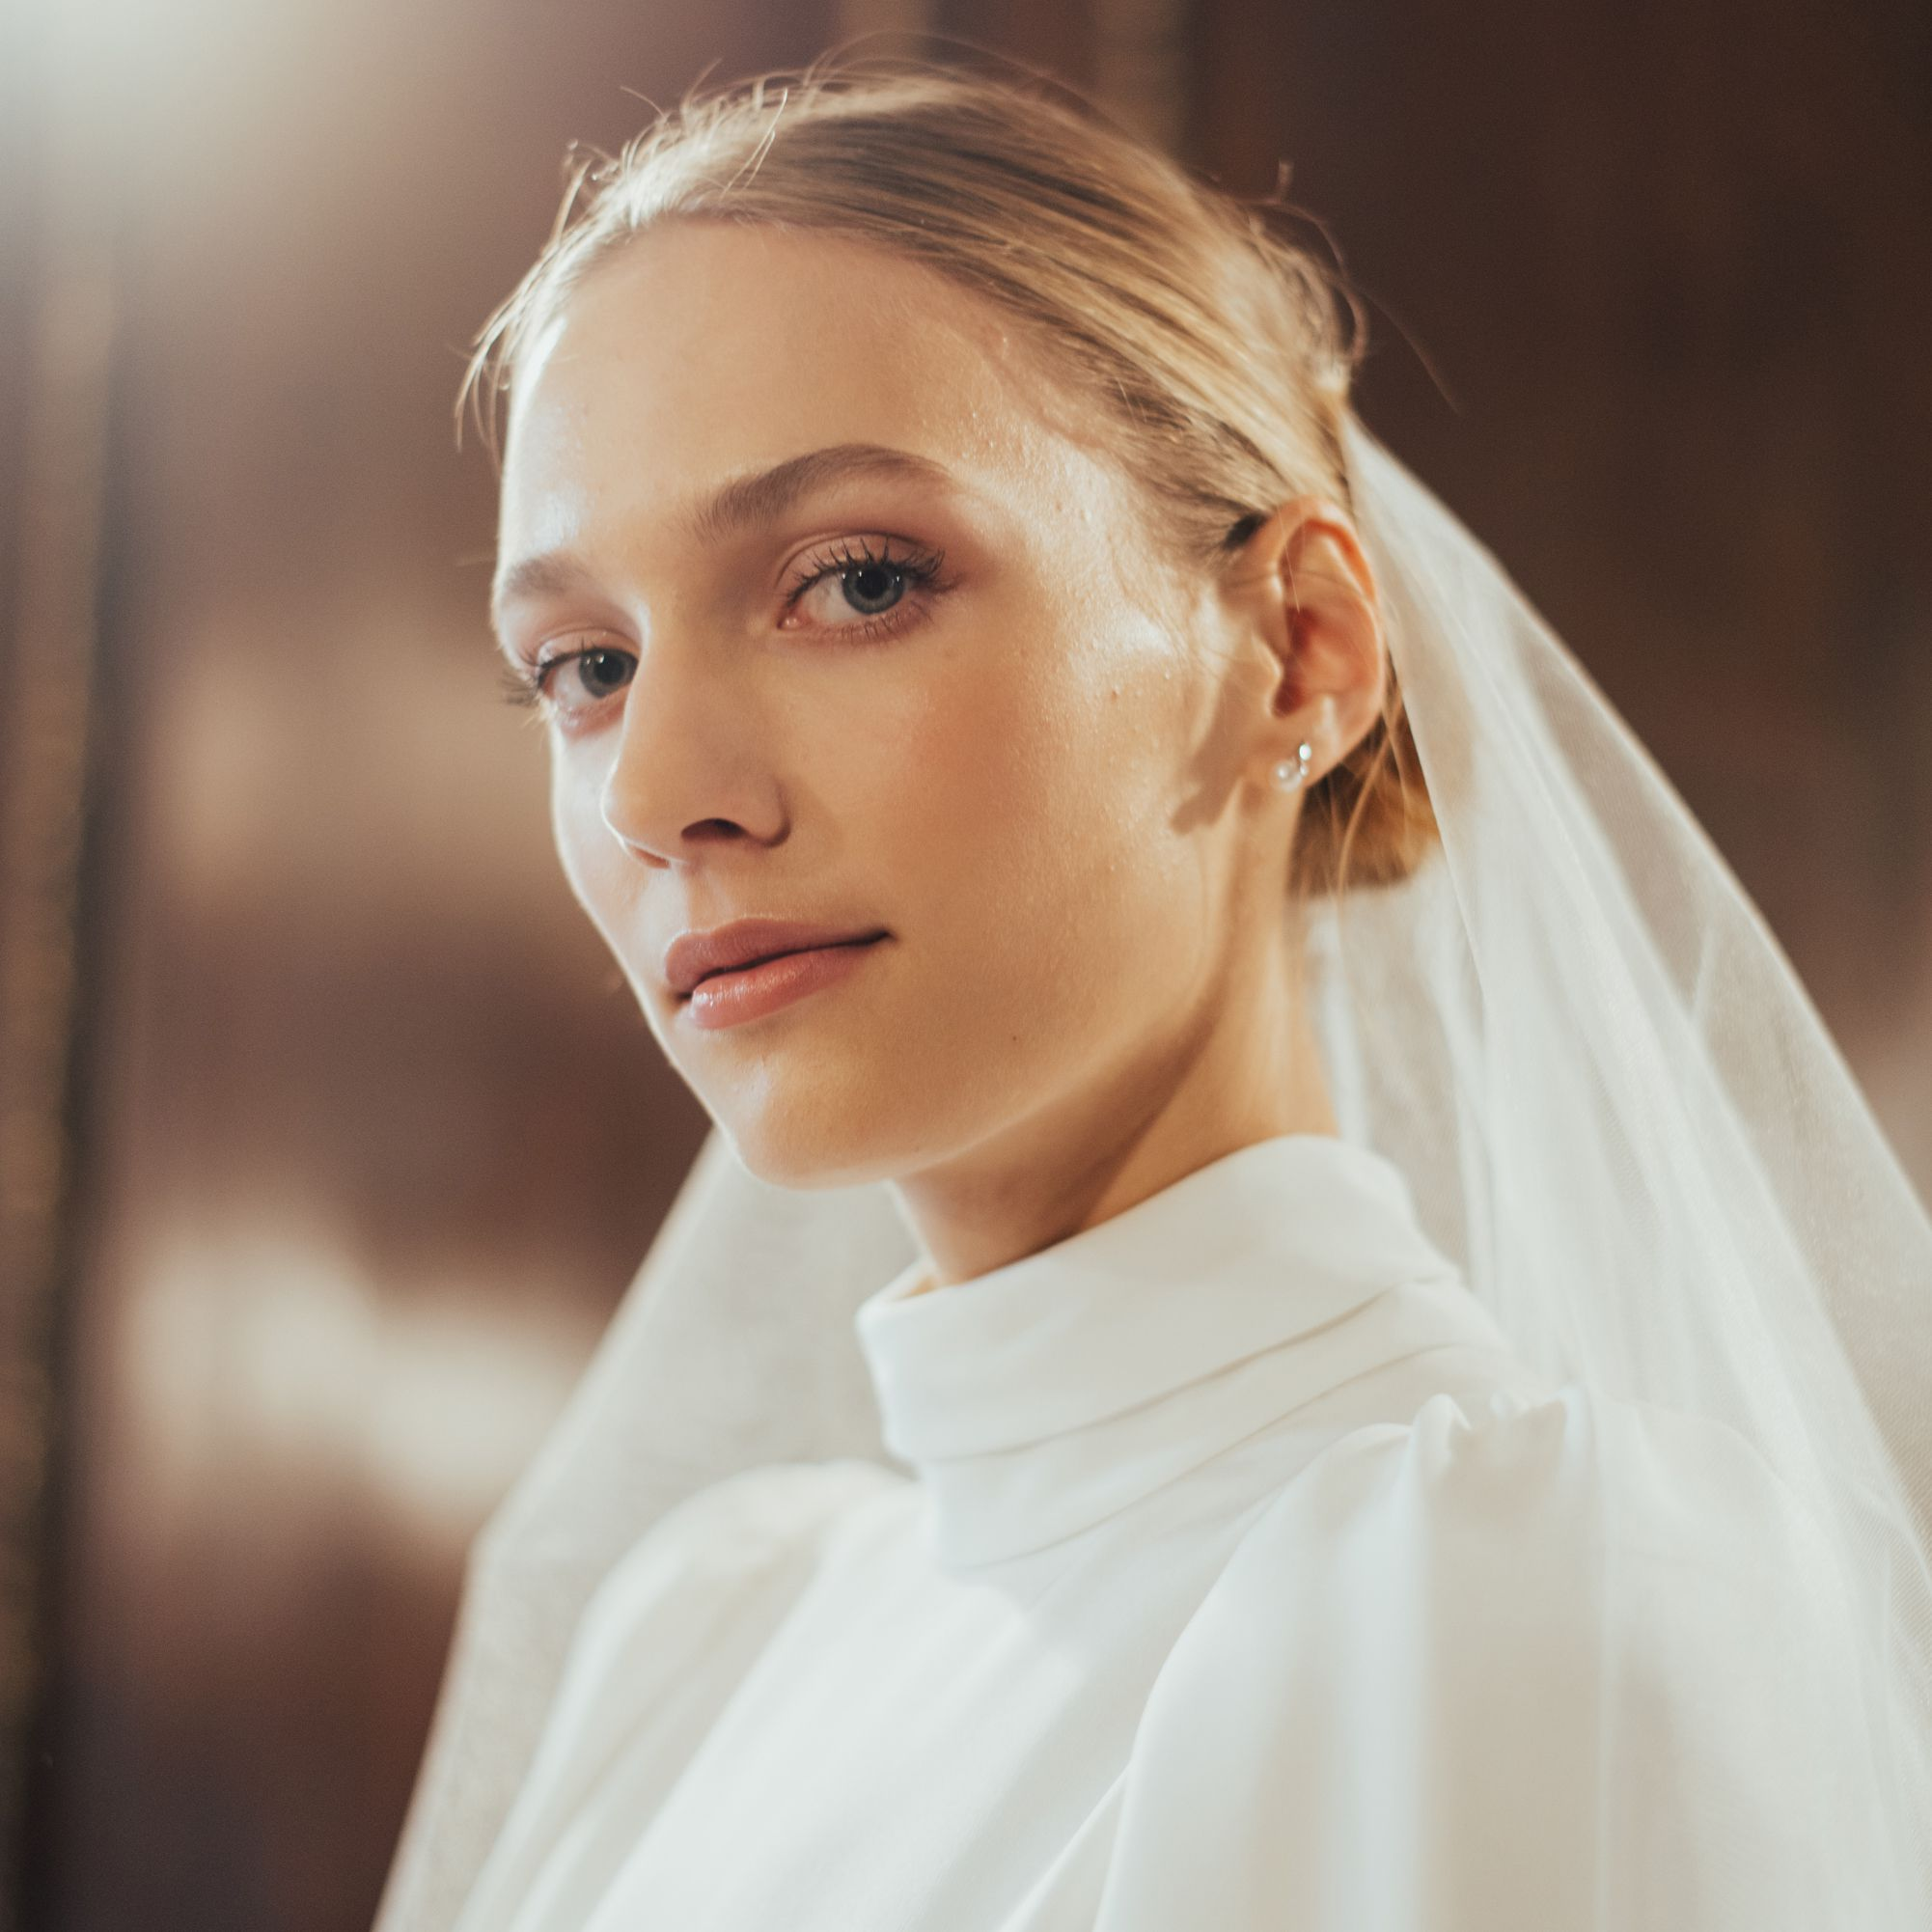 The Best Facials in NYC for the Ultimate Bridal Glow